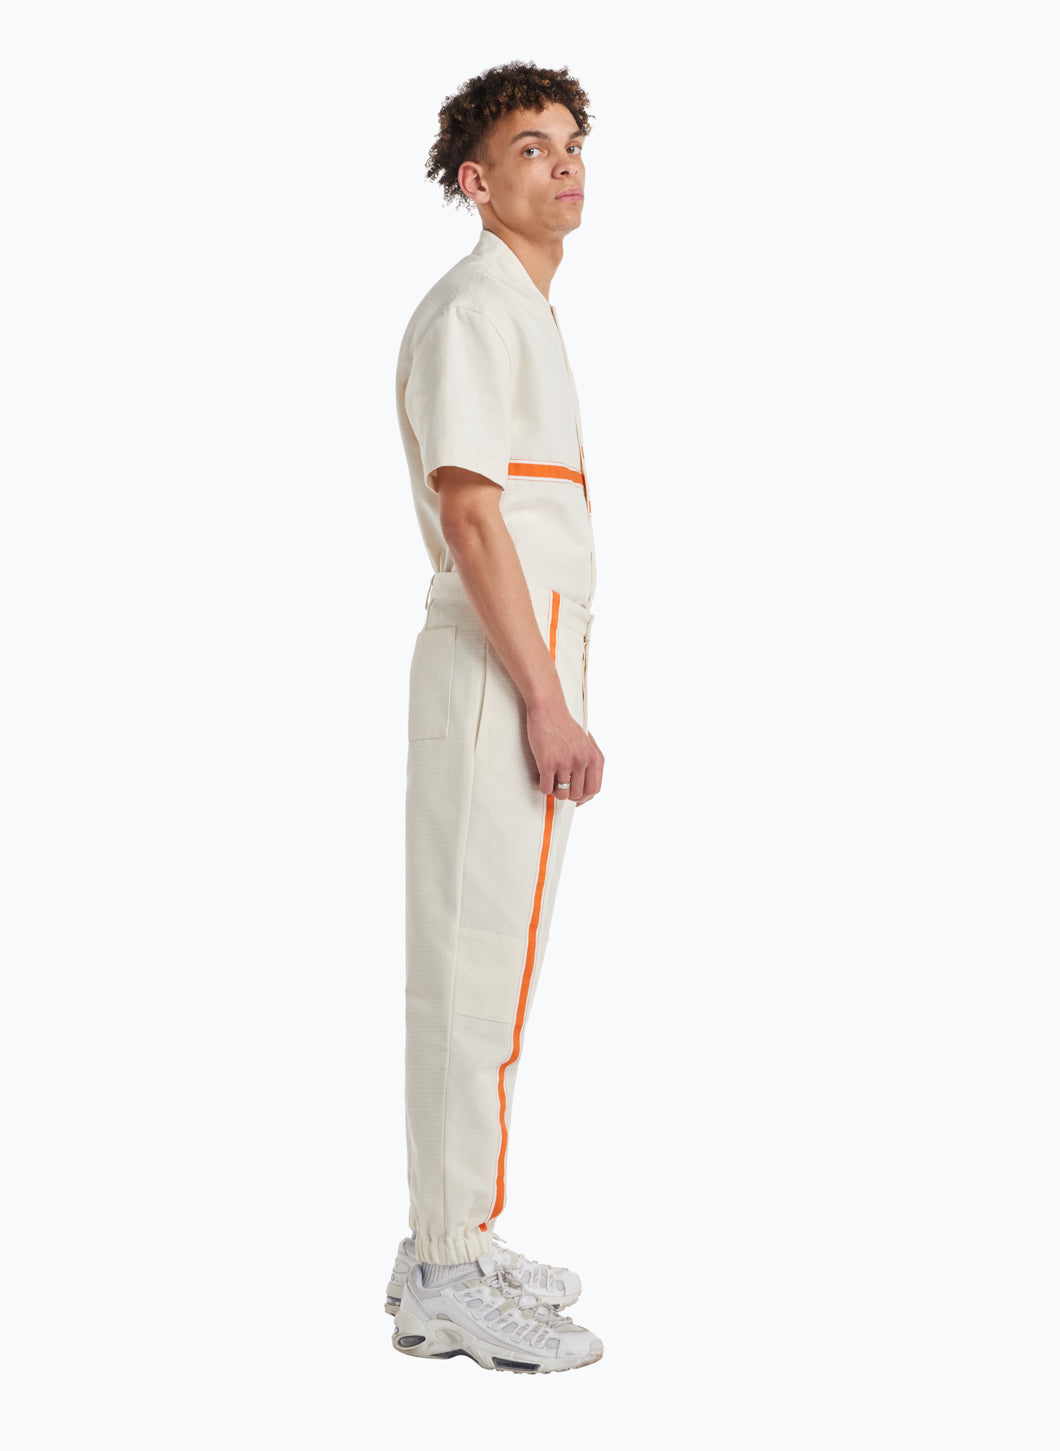 Pants with Vertical Bands in White Cotton Ripstop with Orange Trim